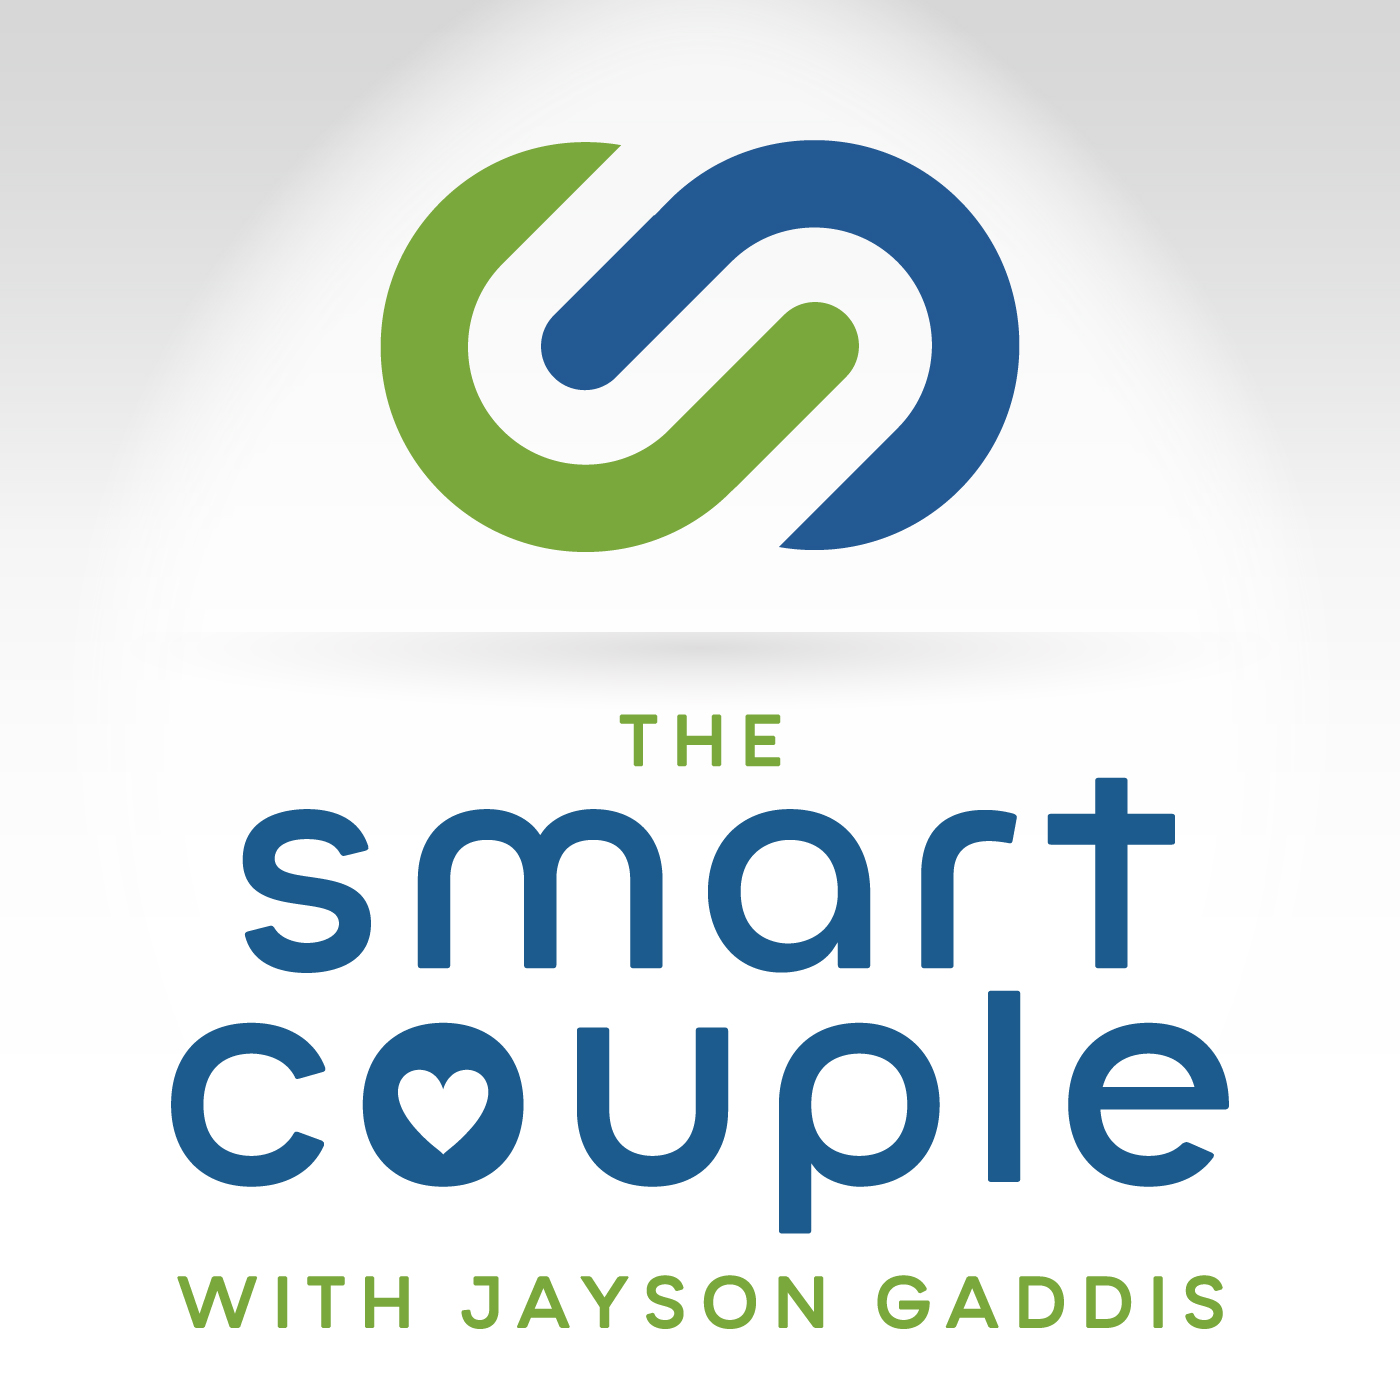 The Relationship School Podcast - 5 Signs You're In An Insecure Relationship - Smart Couple Podcast #225